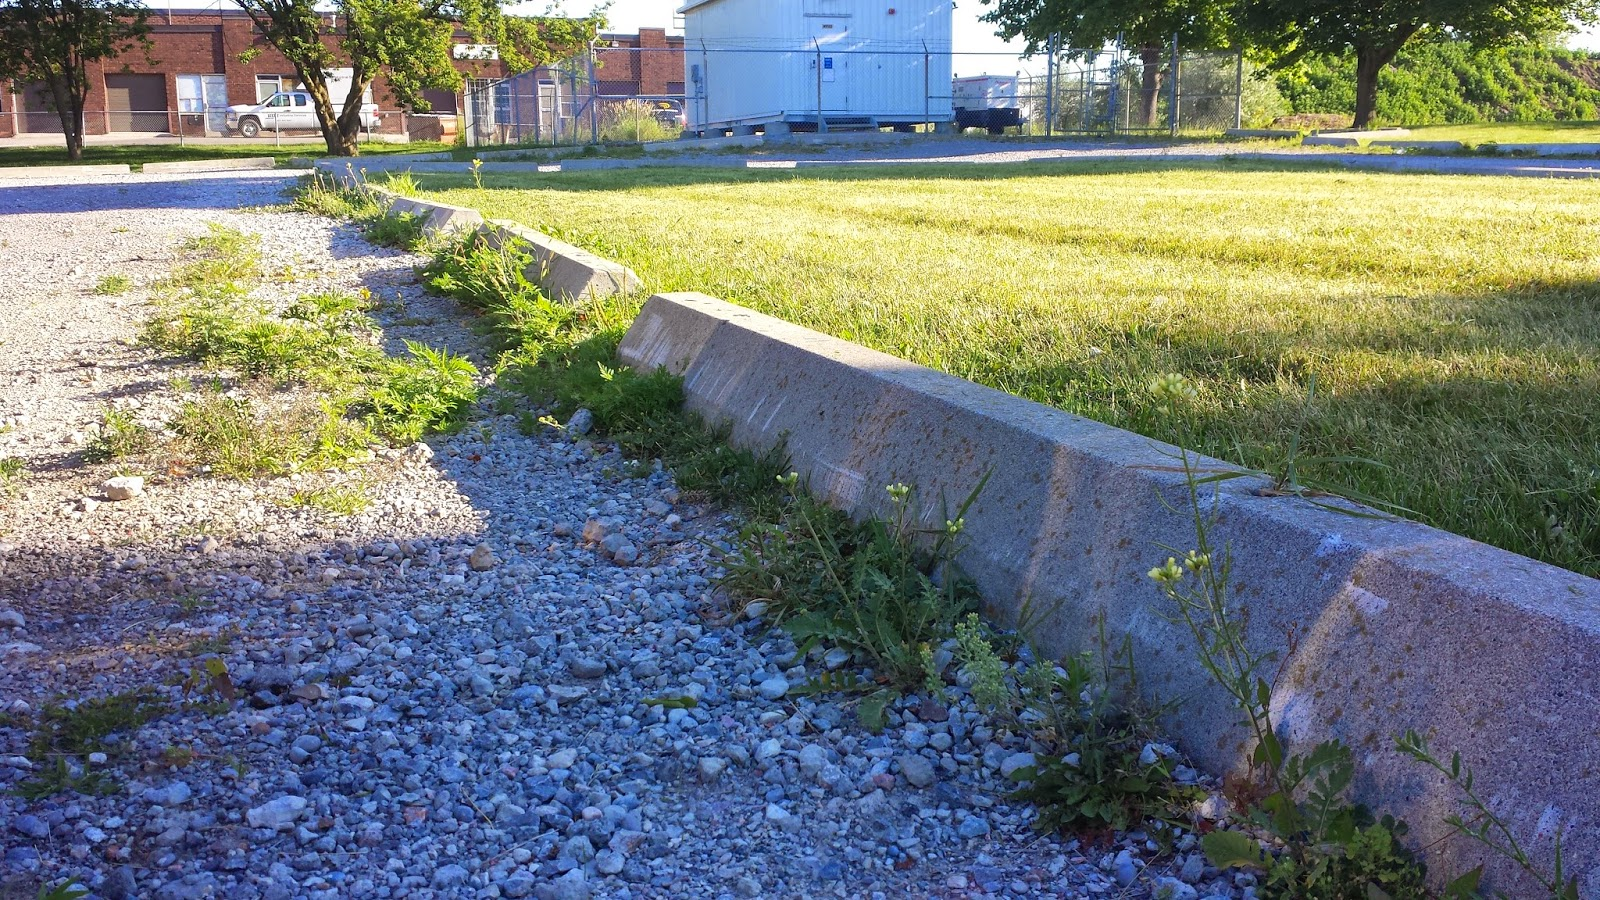 Concrete blocks found in parking lots to mark the curbs.